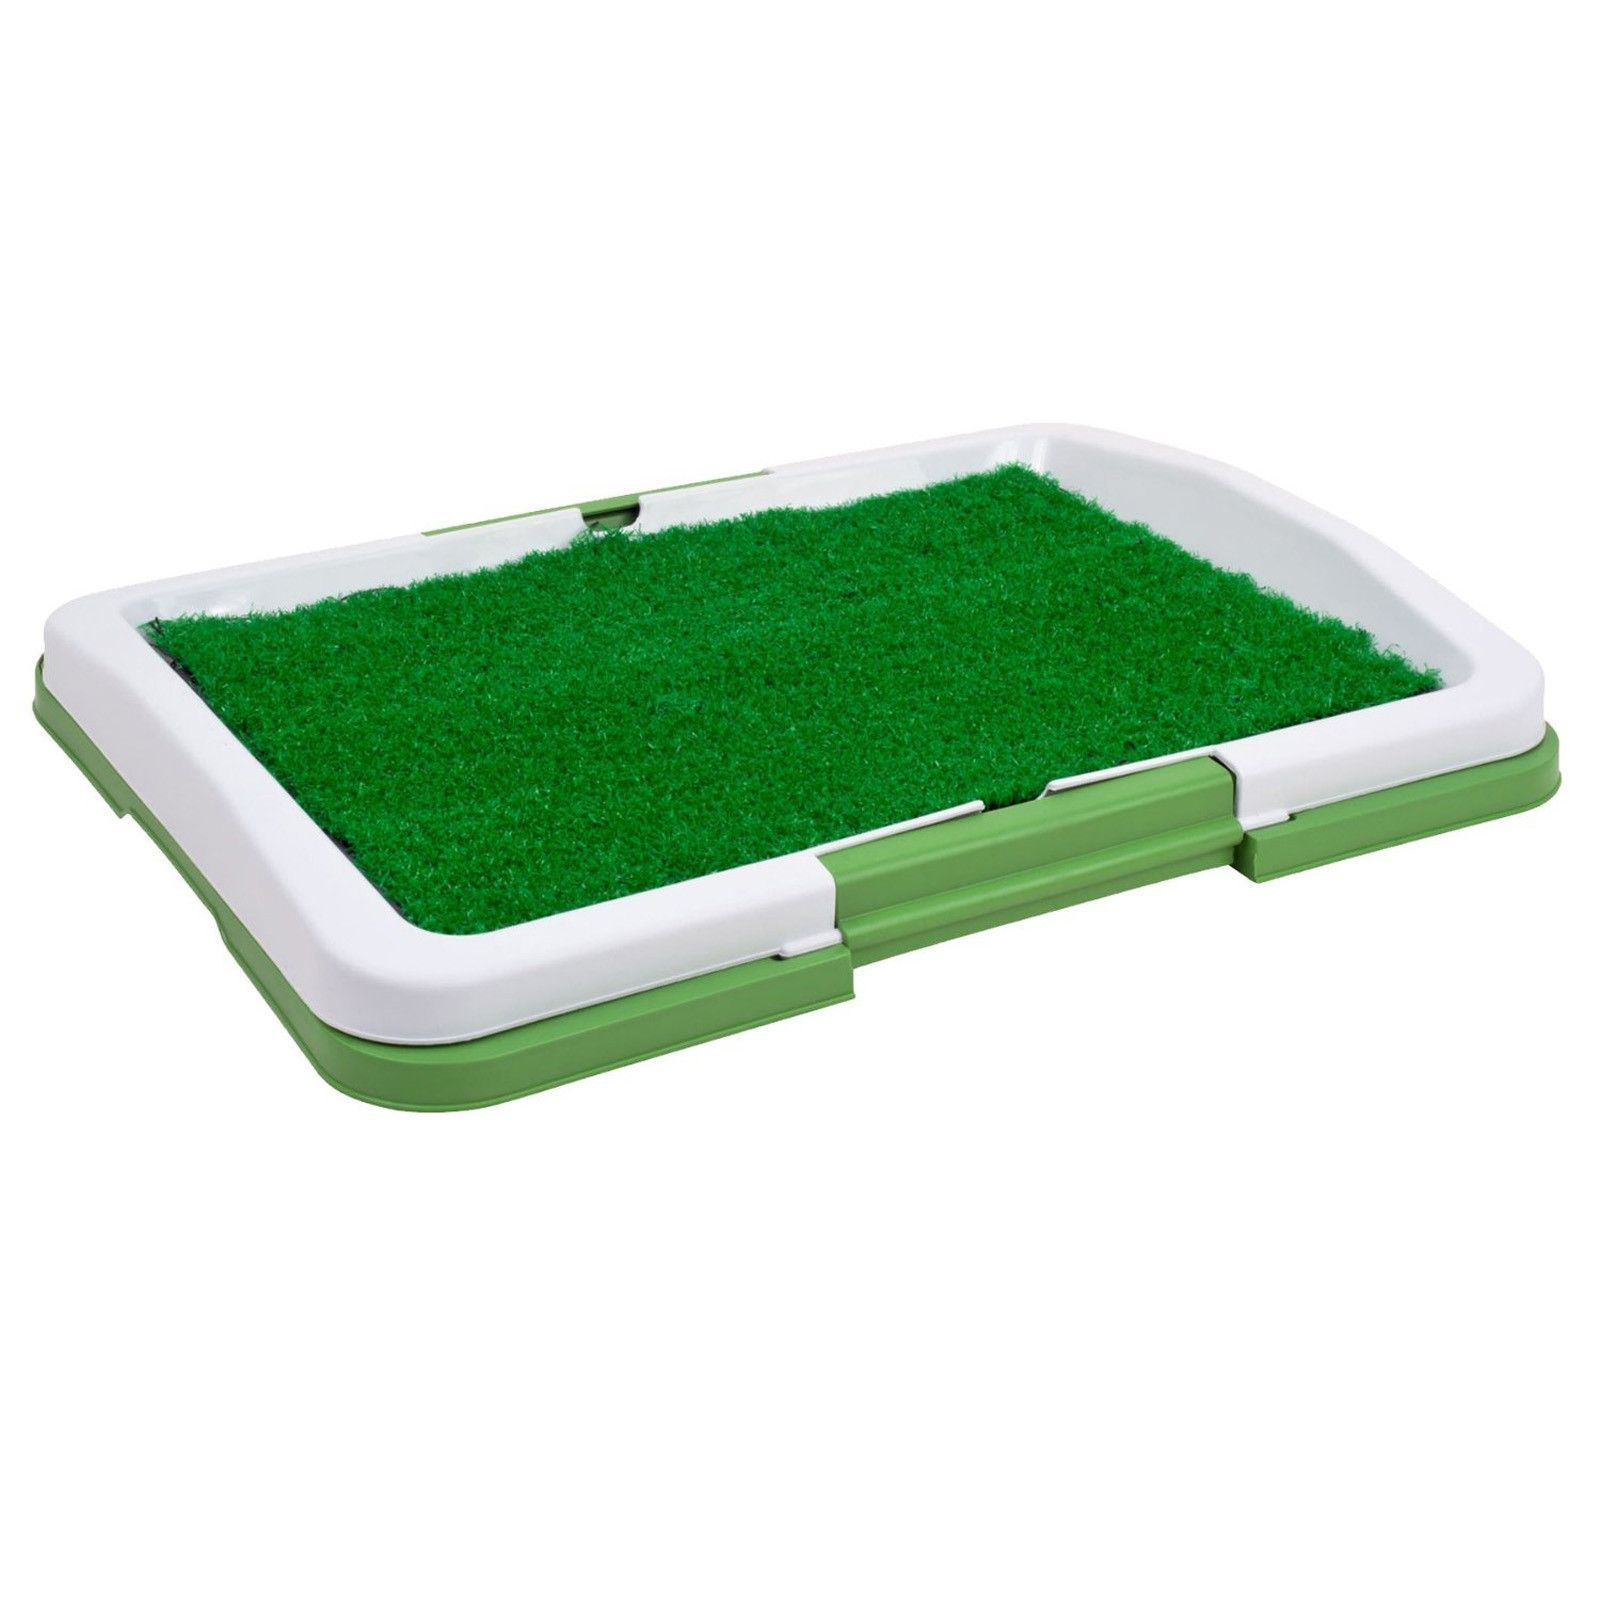 Puppy potty trainer indoor grass training patch with layer